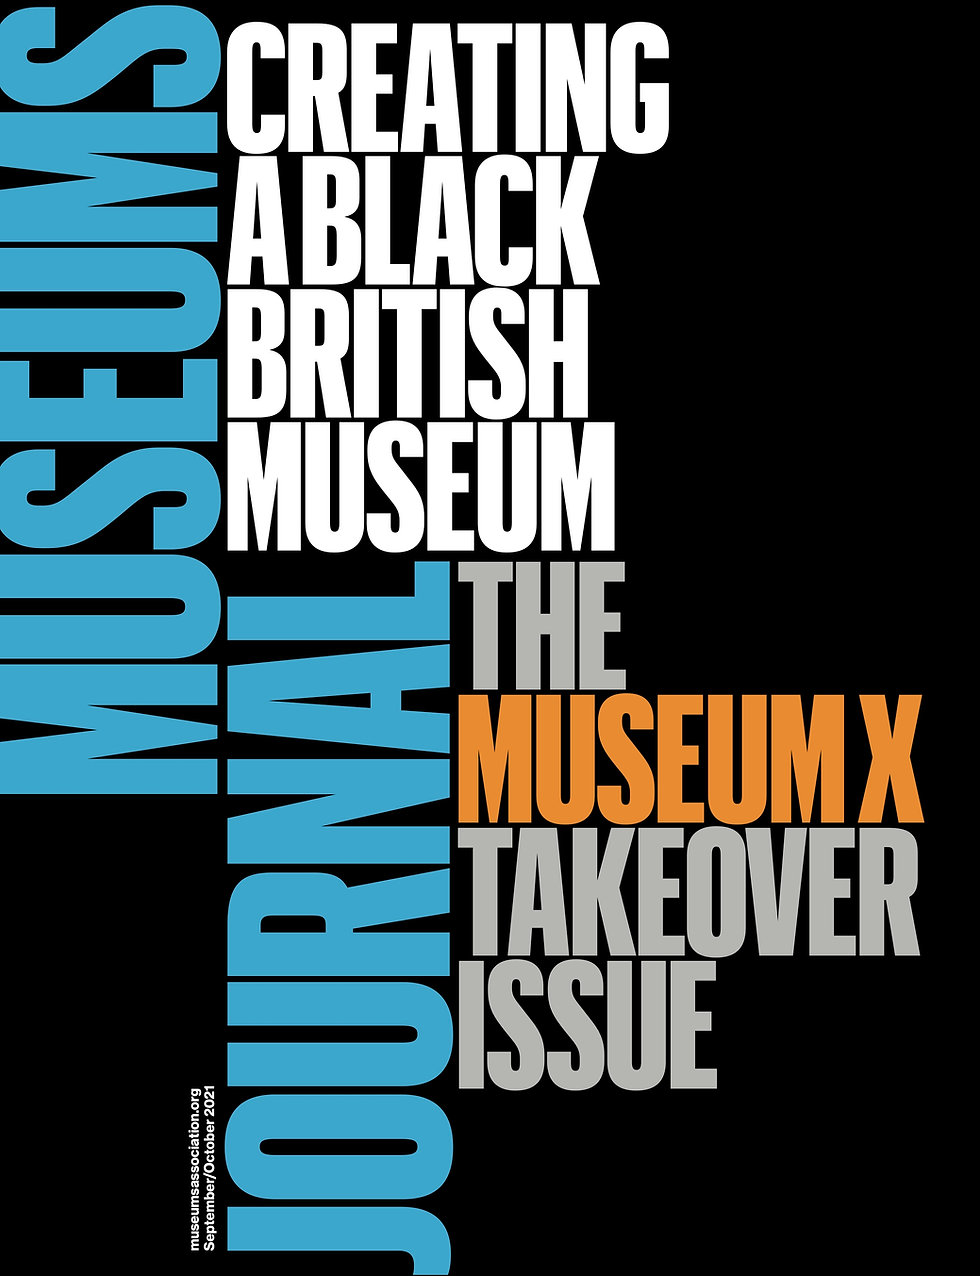 Museums Journal - Takeover Edition